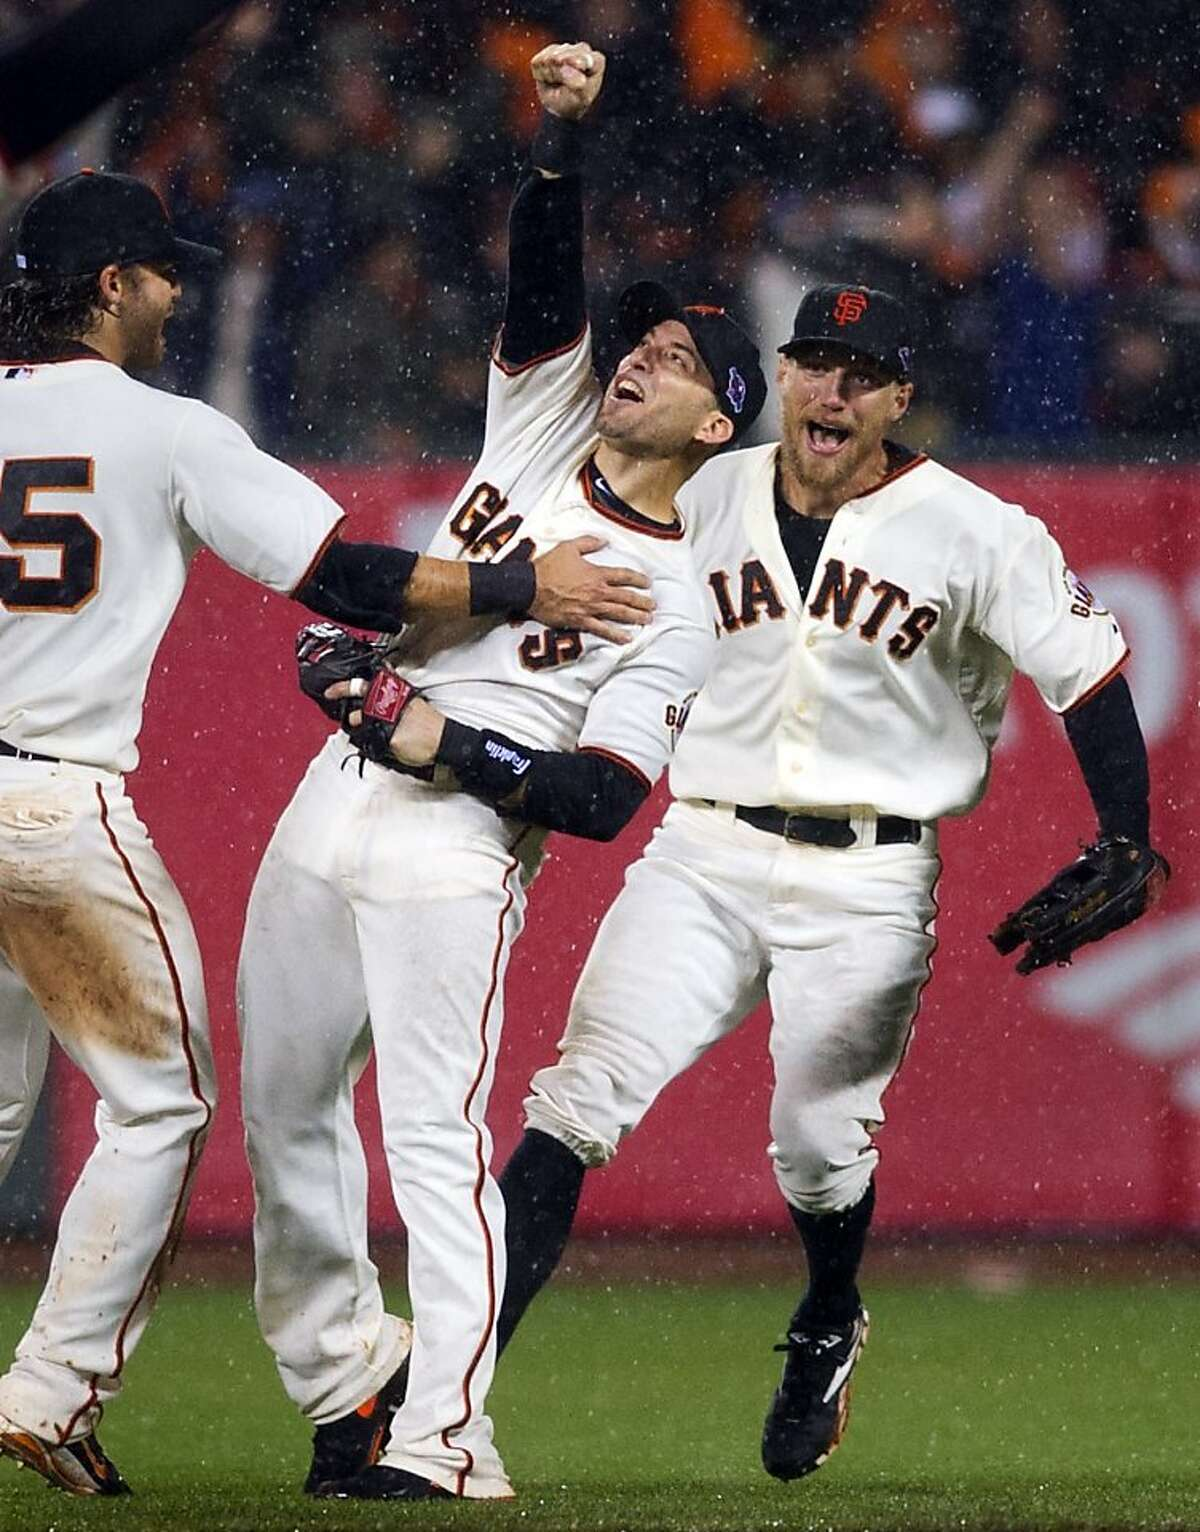 13. Marco Scutaro in the rain - the indelible image from the 2012 San Francisco Giants' NLCS victory over the St. Louis Cardinals. The Giants rallied back from down three games to one, clinching a spot in the World Series with a rainy 9-0 victory at home.